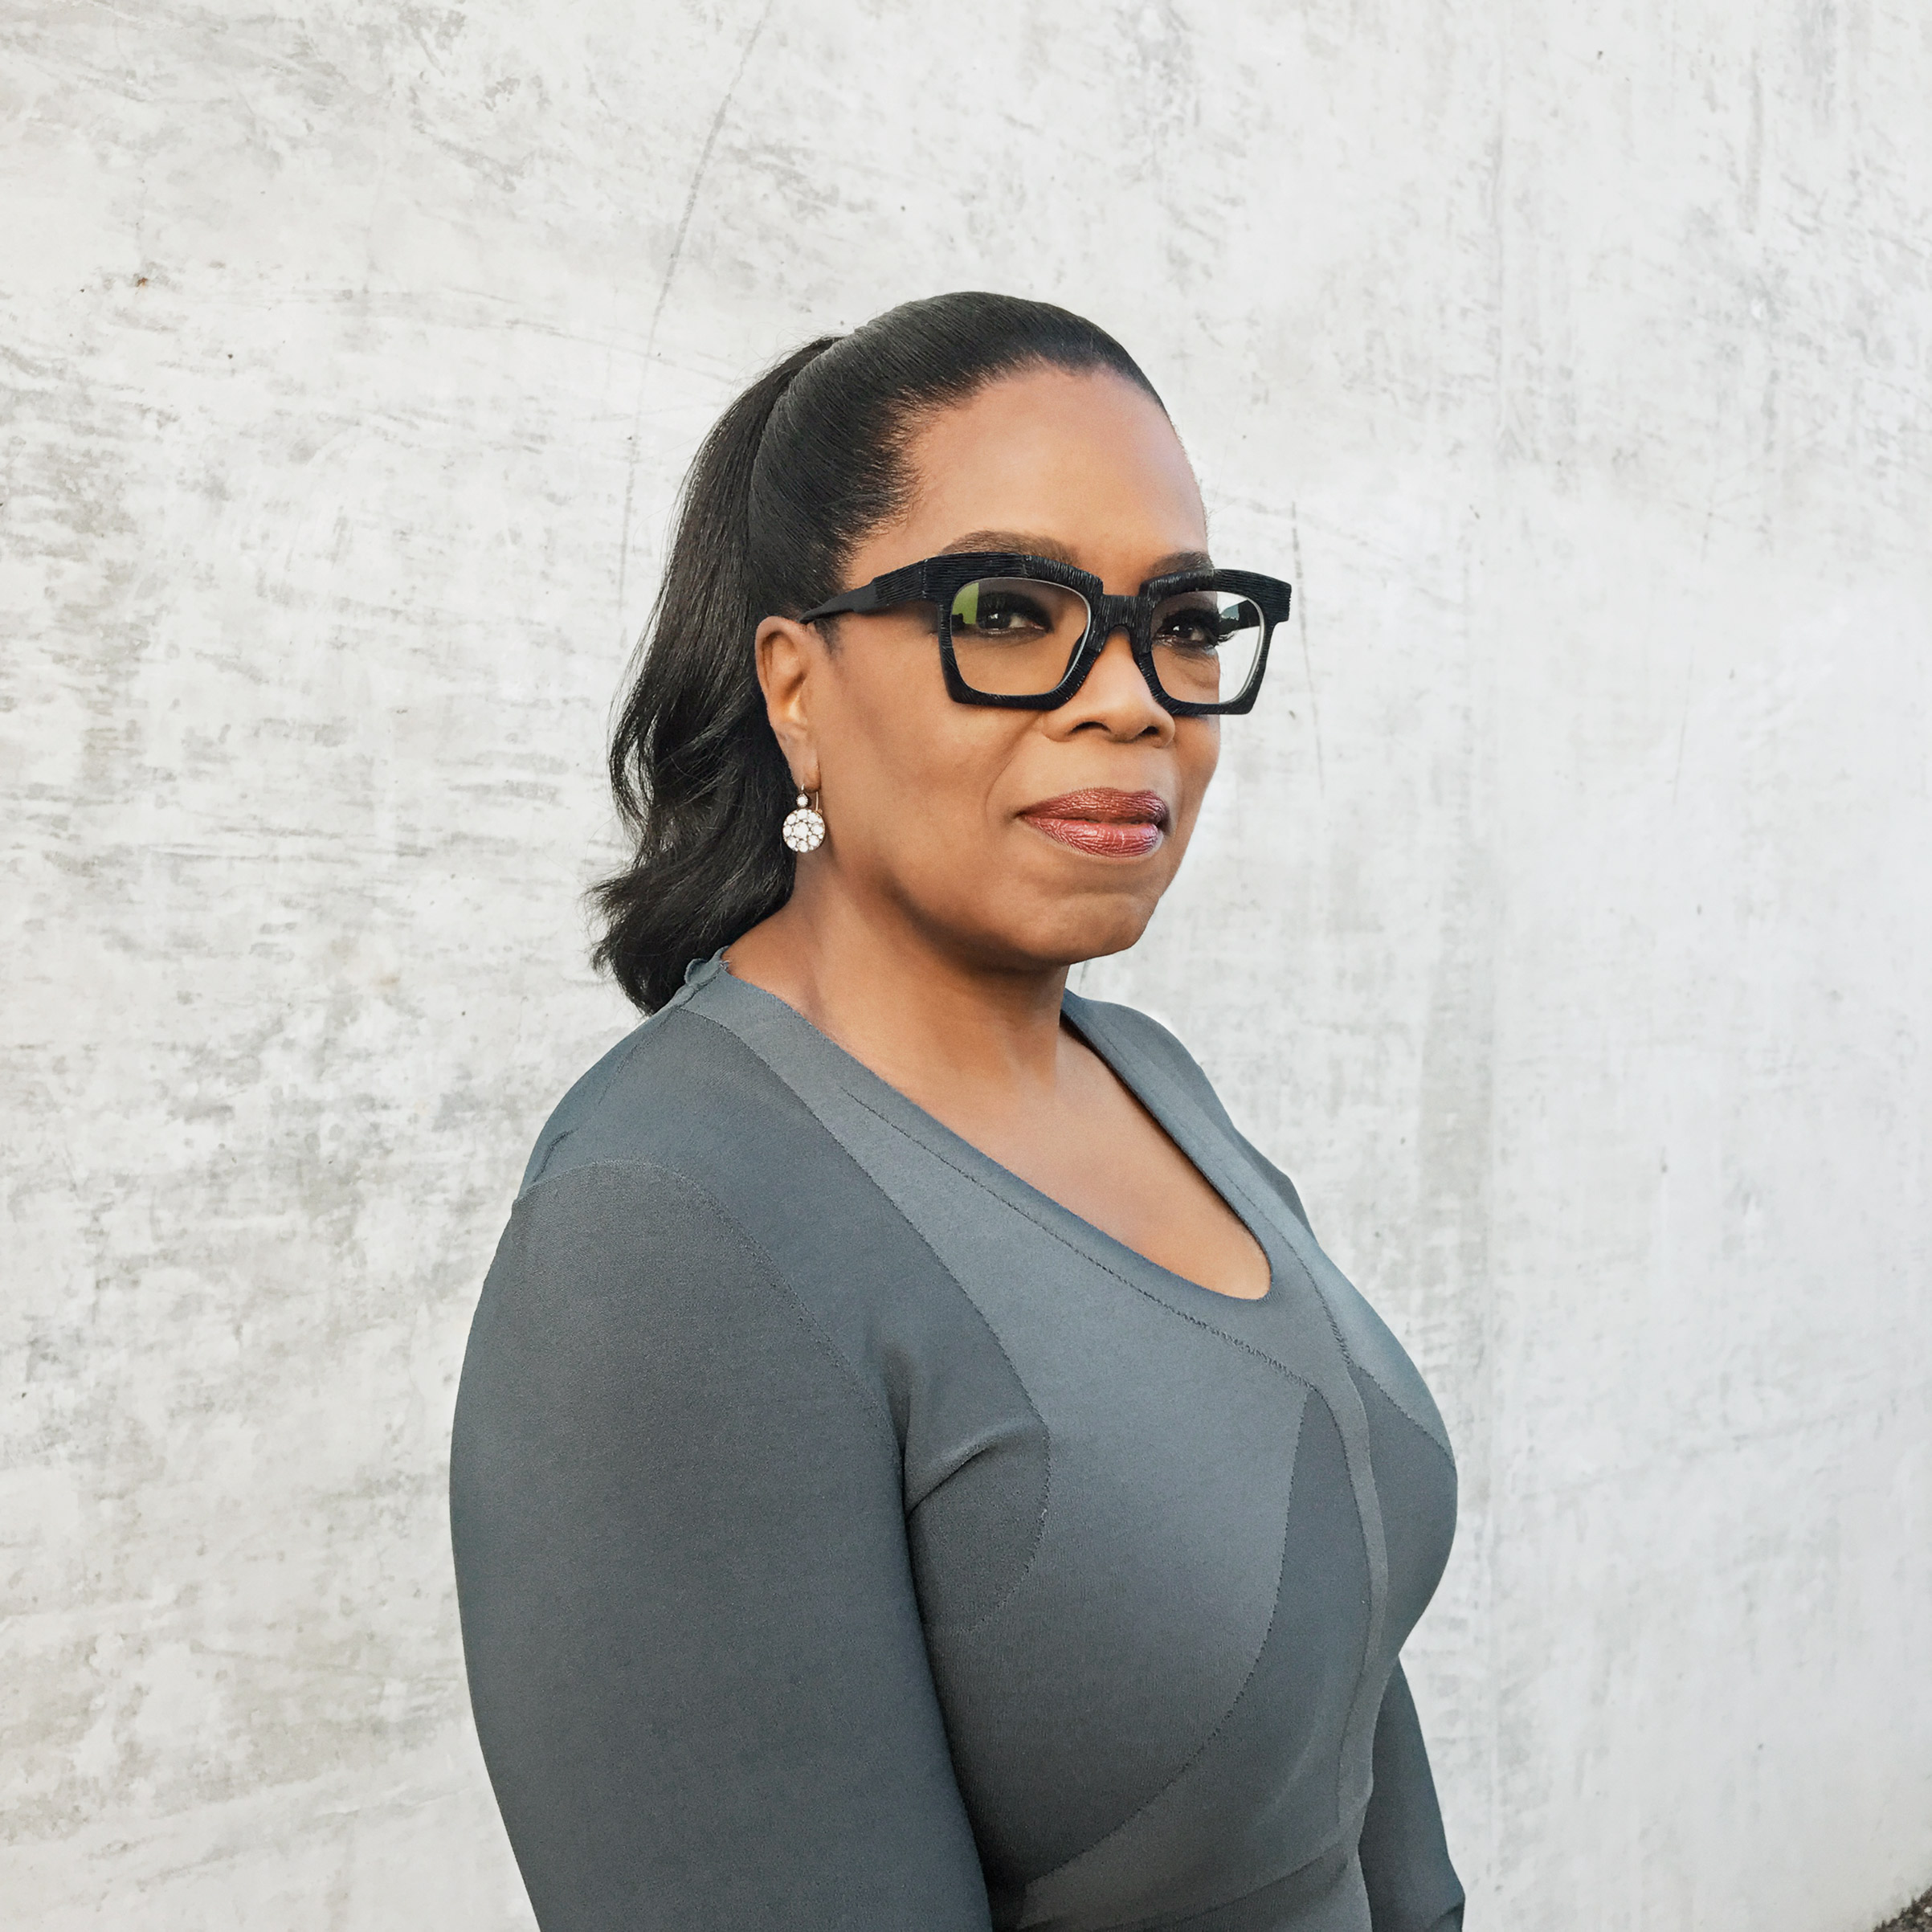 Portrait of Oprah Winfrey, photographed at the OWN Office in West Hollywood, Los Angeles, October 17, 2016.